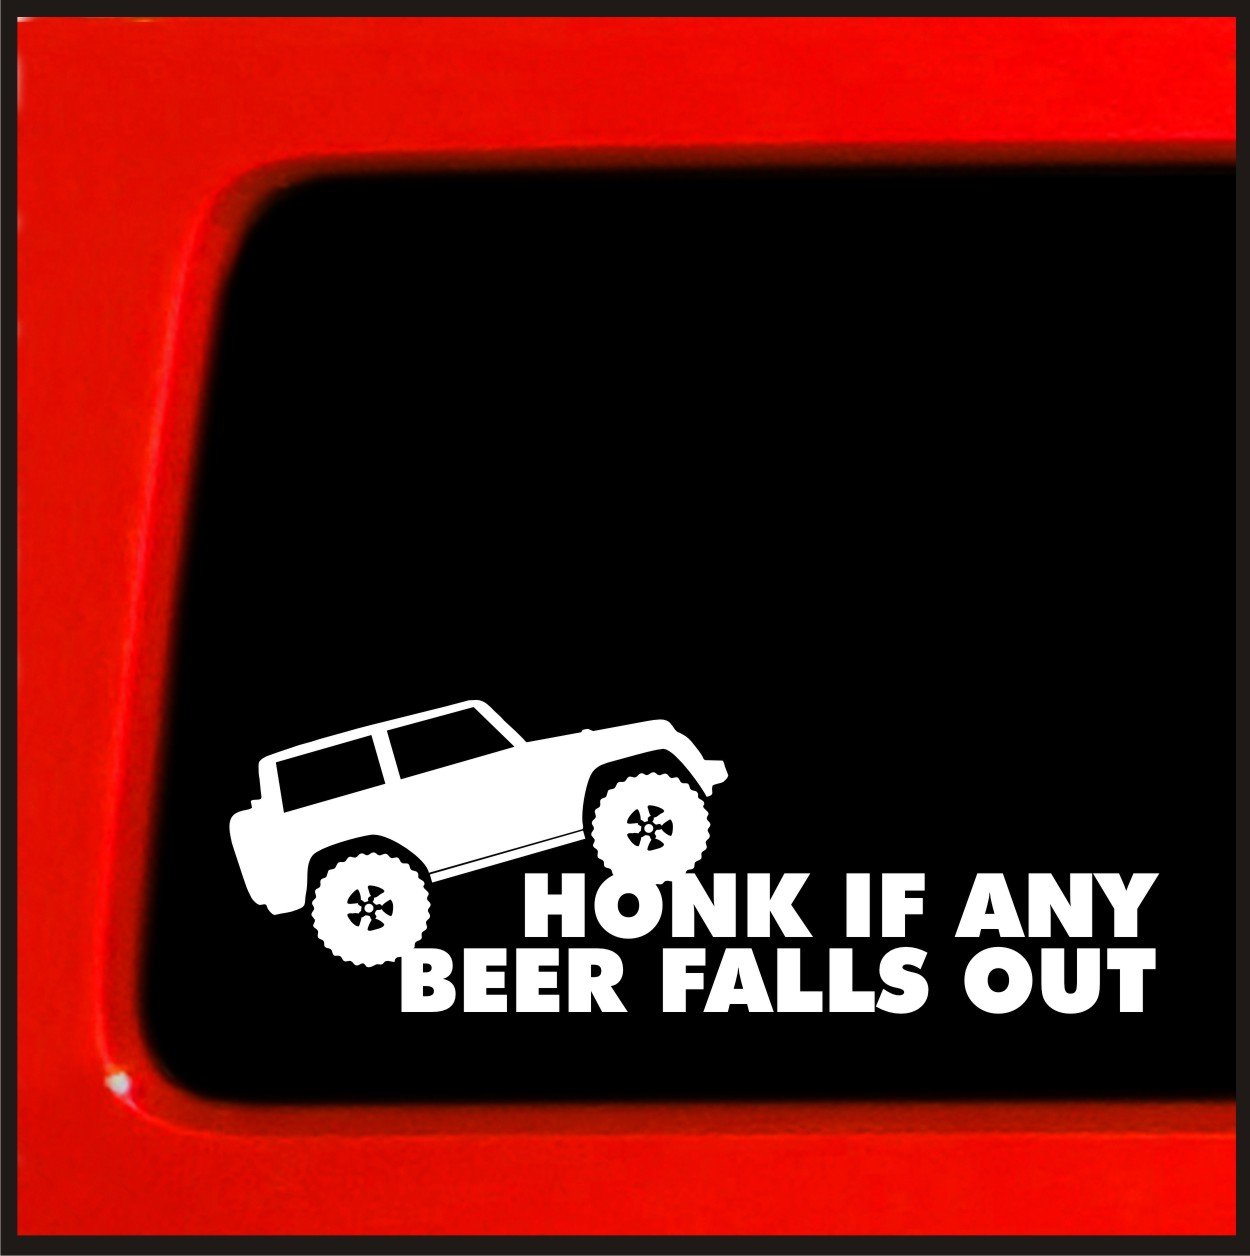 Amazon.com: Honk if any beer falls out - Funny sticker for Jeep truck white decal  bumper: Automotive